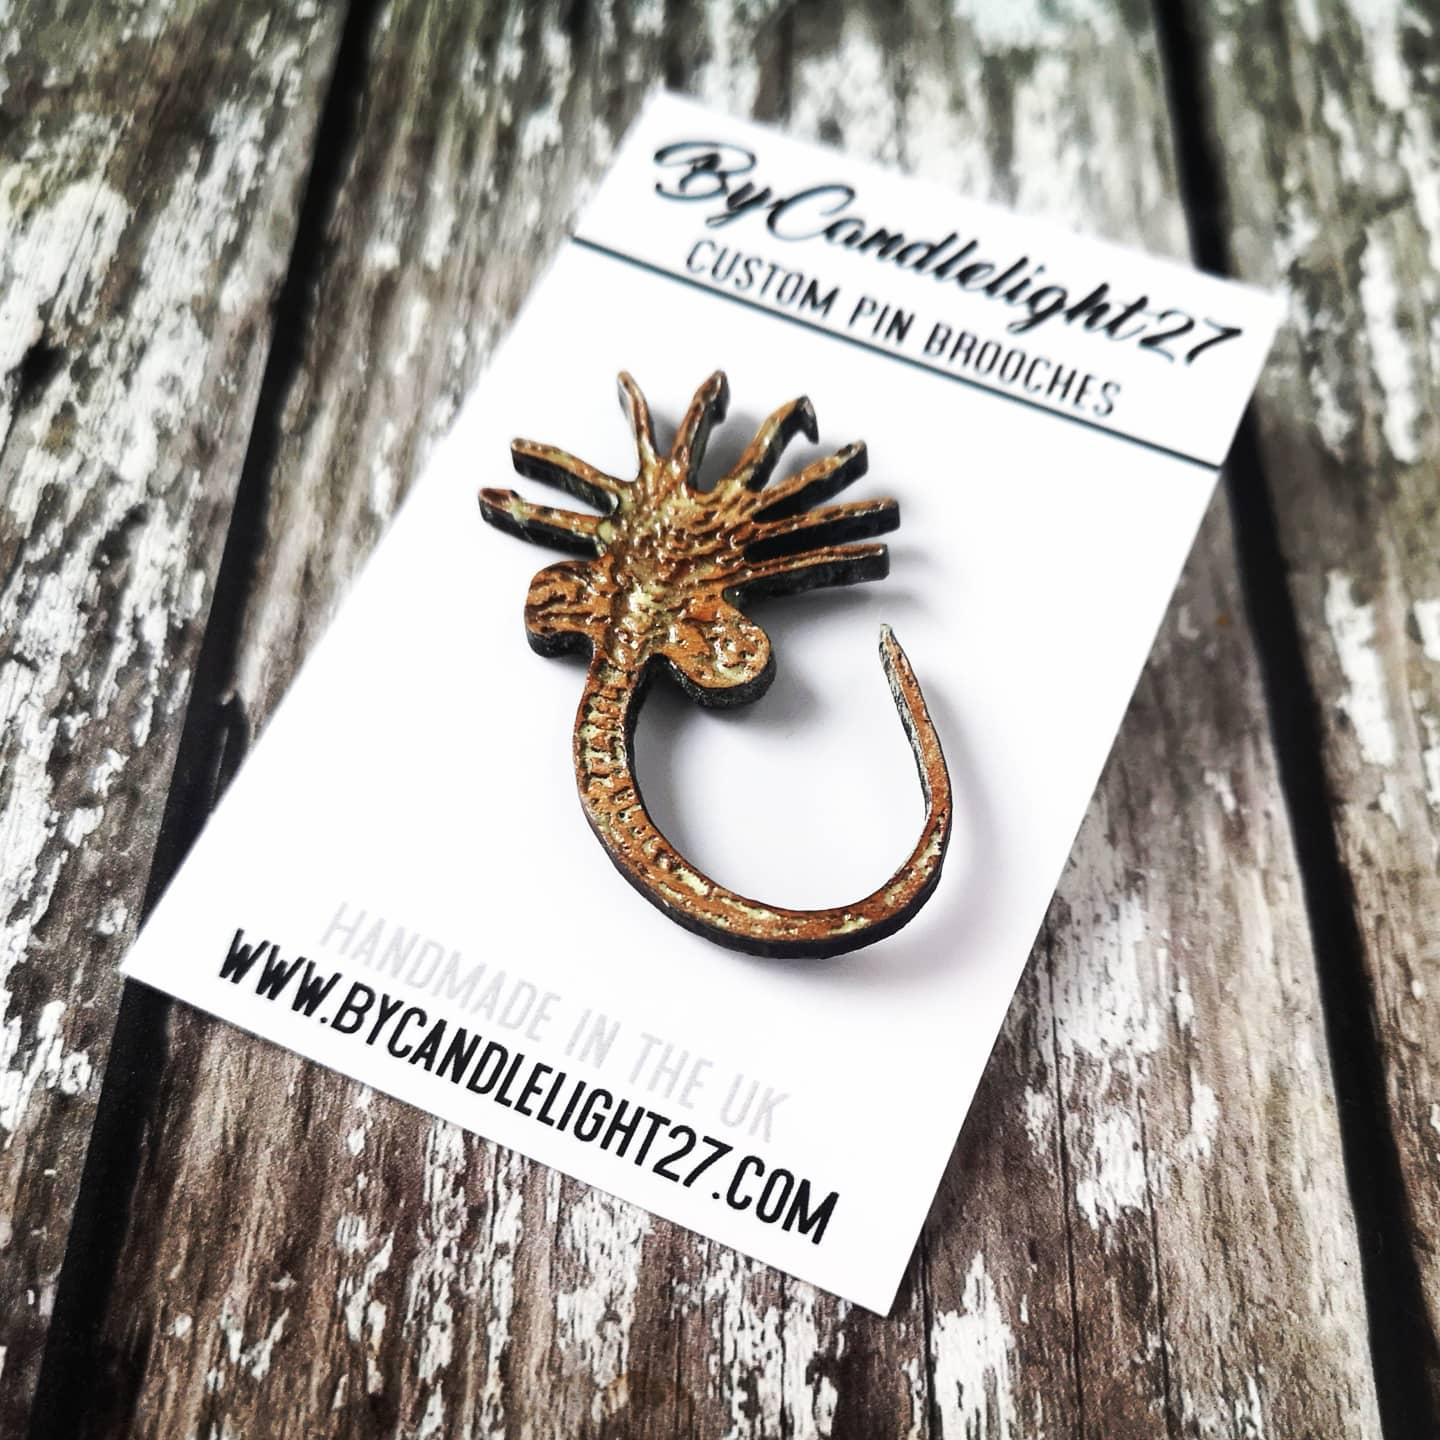 Facehugger Glow Aliens Horror Pin